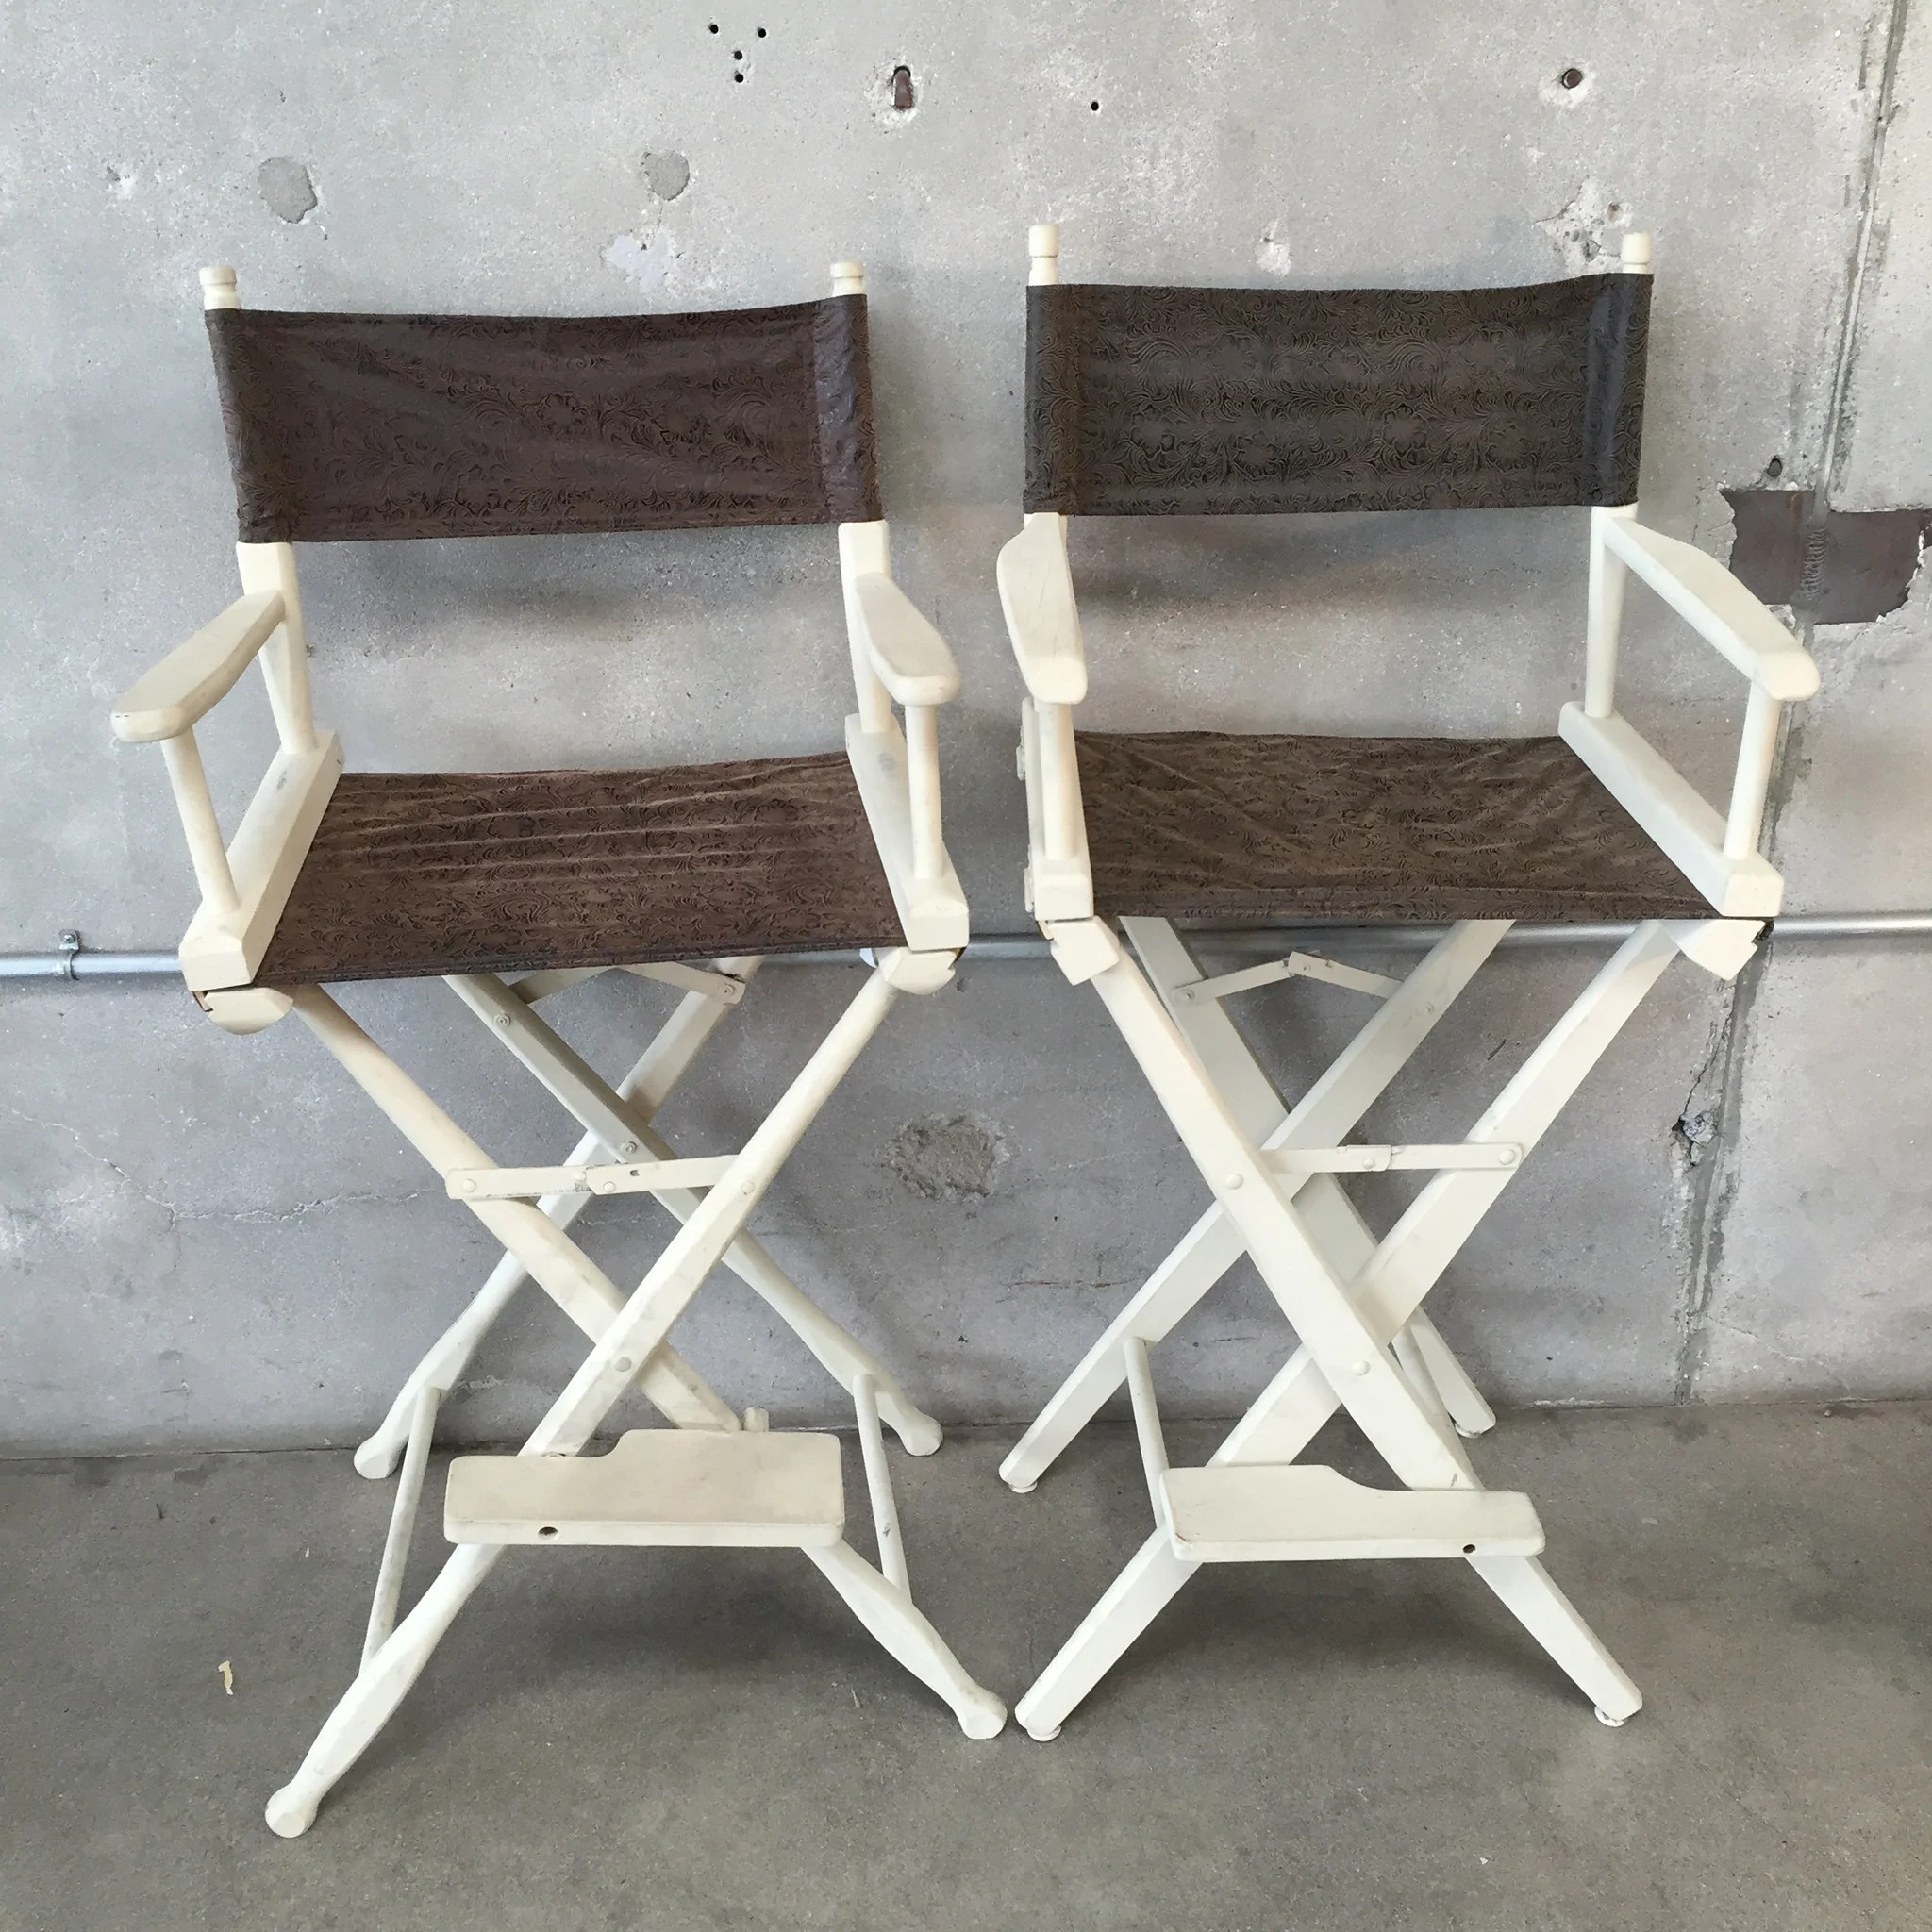 directors chair bar stool small pub table and chairs stools set of 4  urbanamericana